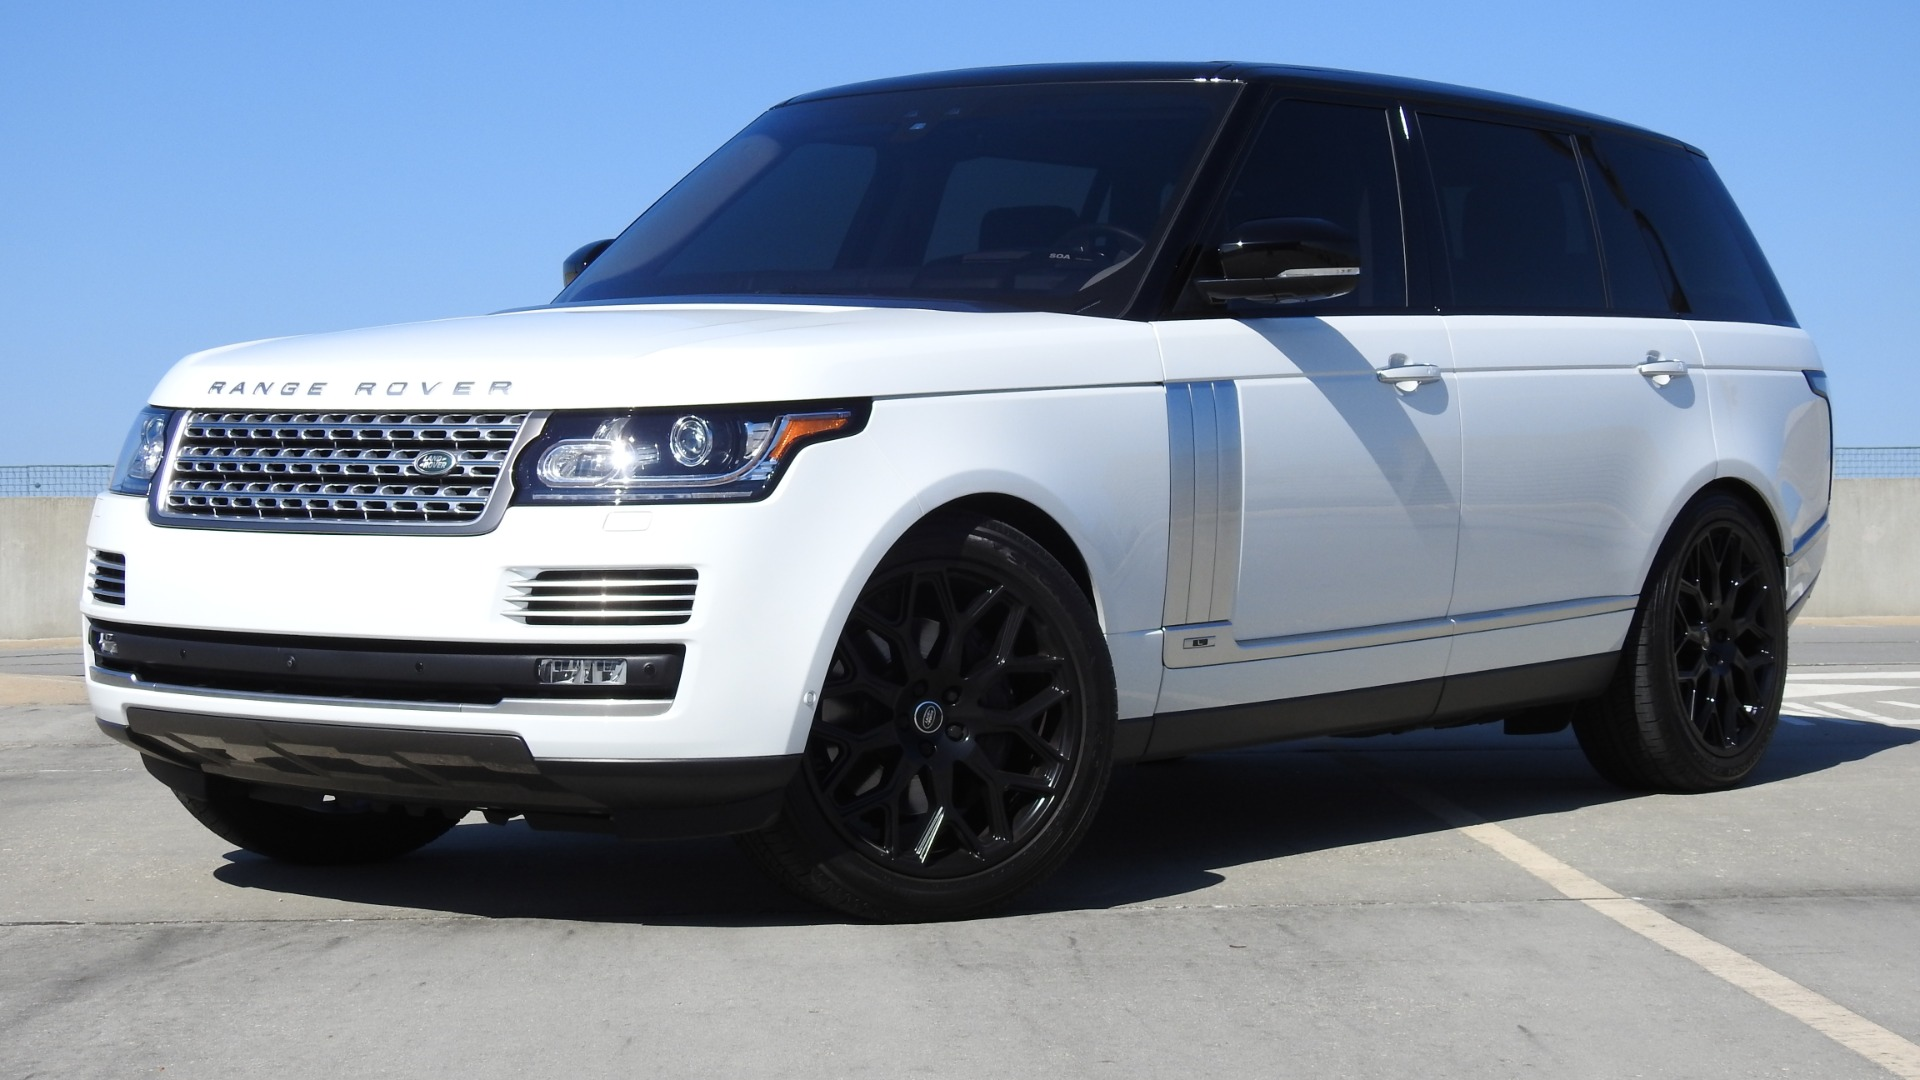 Range Rover Autobiography >> 2017 Land Rover Range Rover Autobiography Lwb Stock Ha360689 For